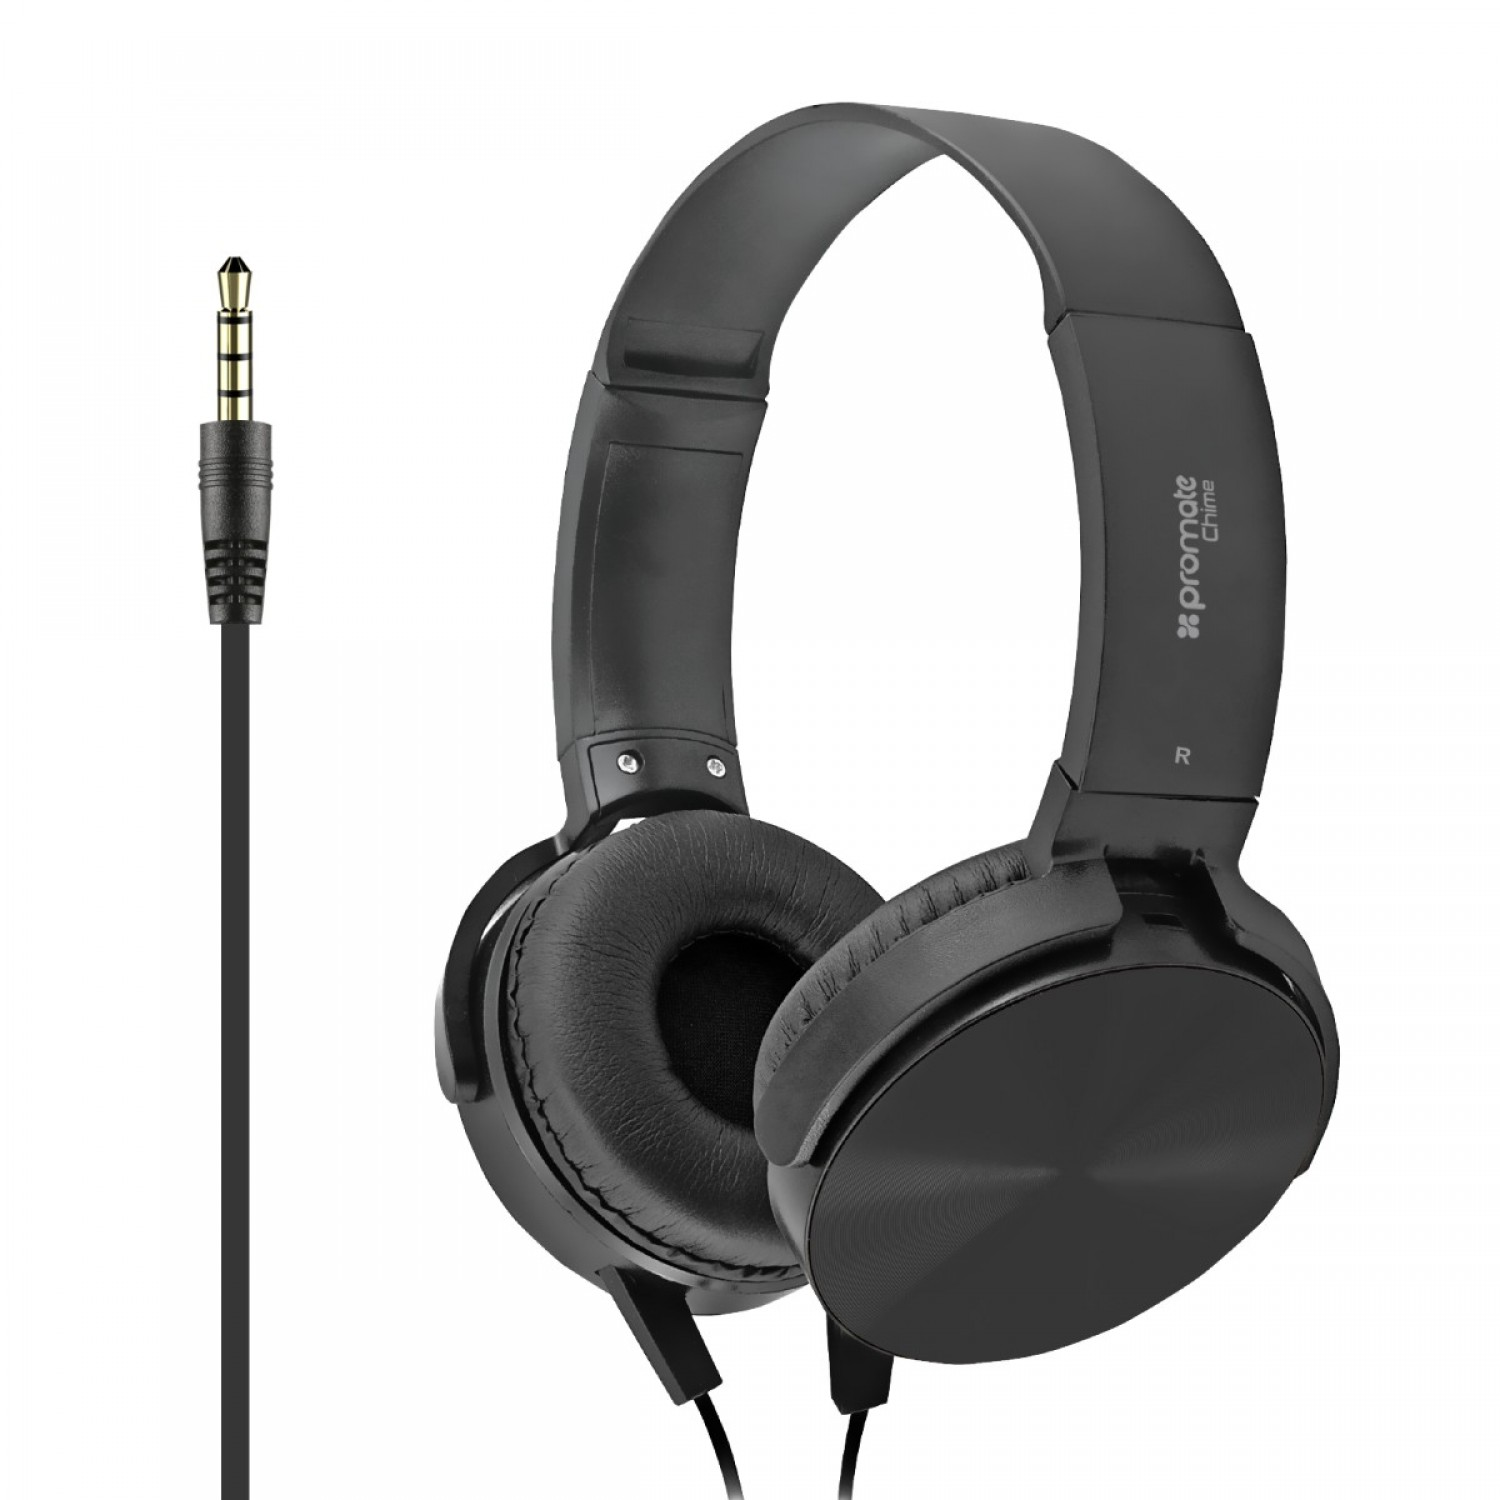 Promate Headphone, Premium Over-Ear Headset with Rotatable Ear-Cups, Built-in Microphone, HD Sound, 3.5mm Audio Jack and Anti-Tangle Wires for Smartphones, Tablets, Mp3, Laptops, Chime Black